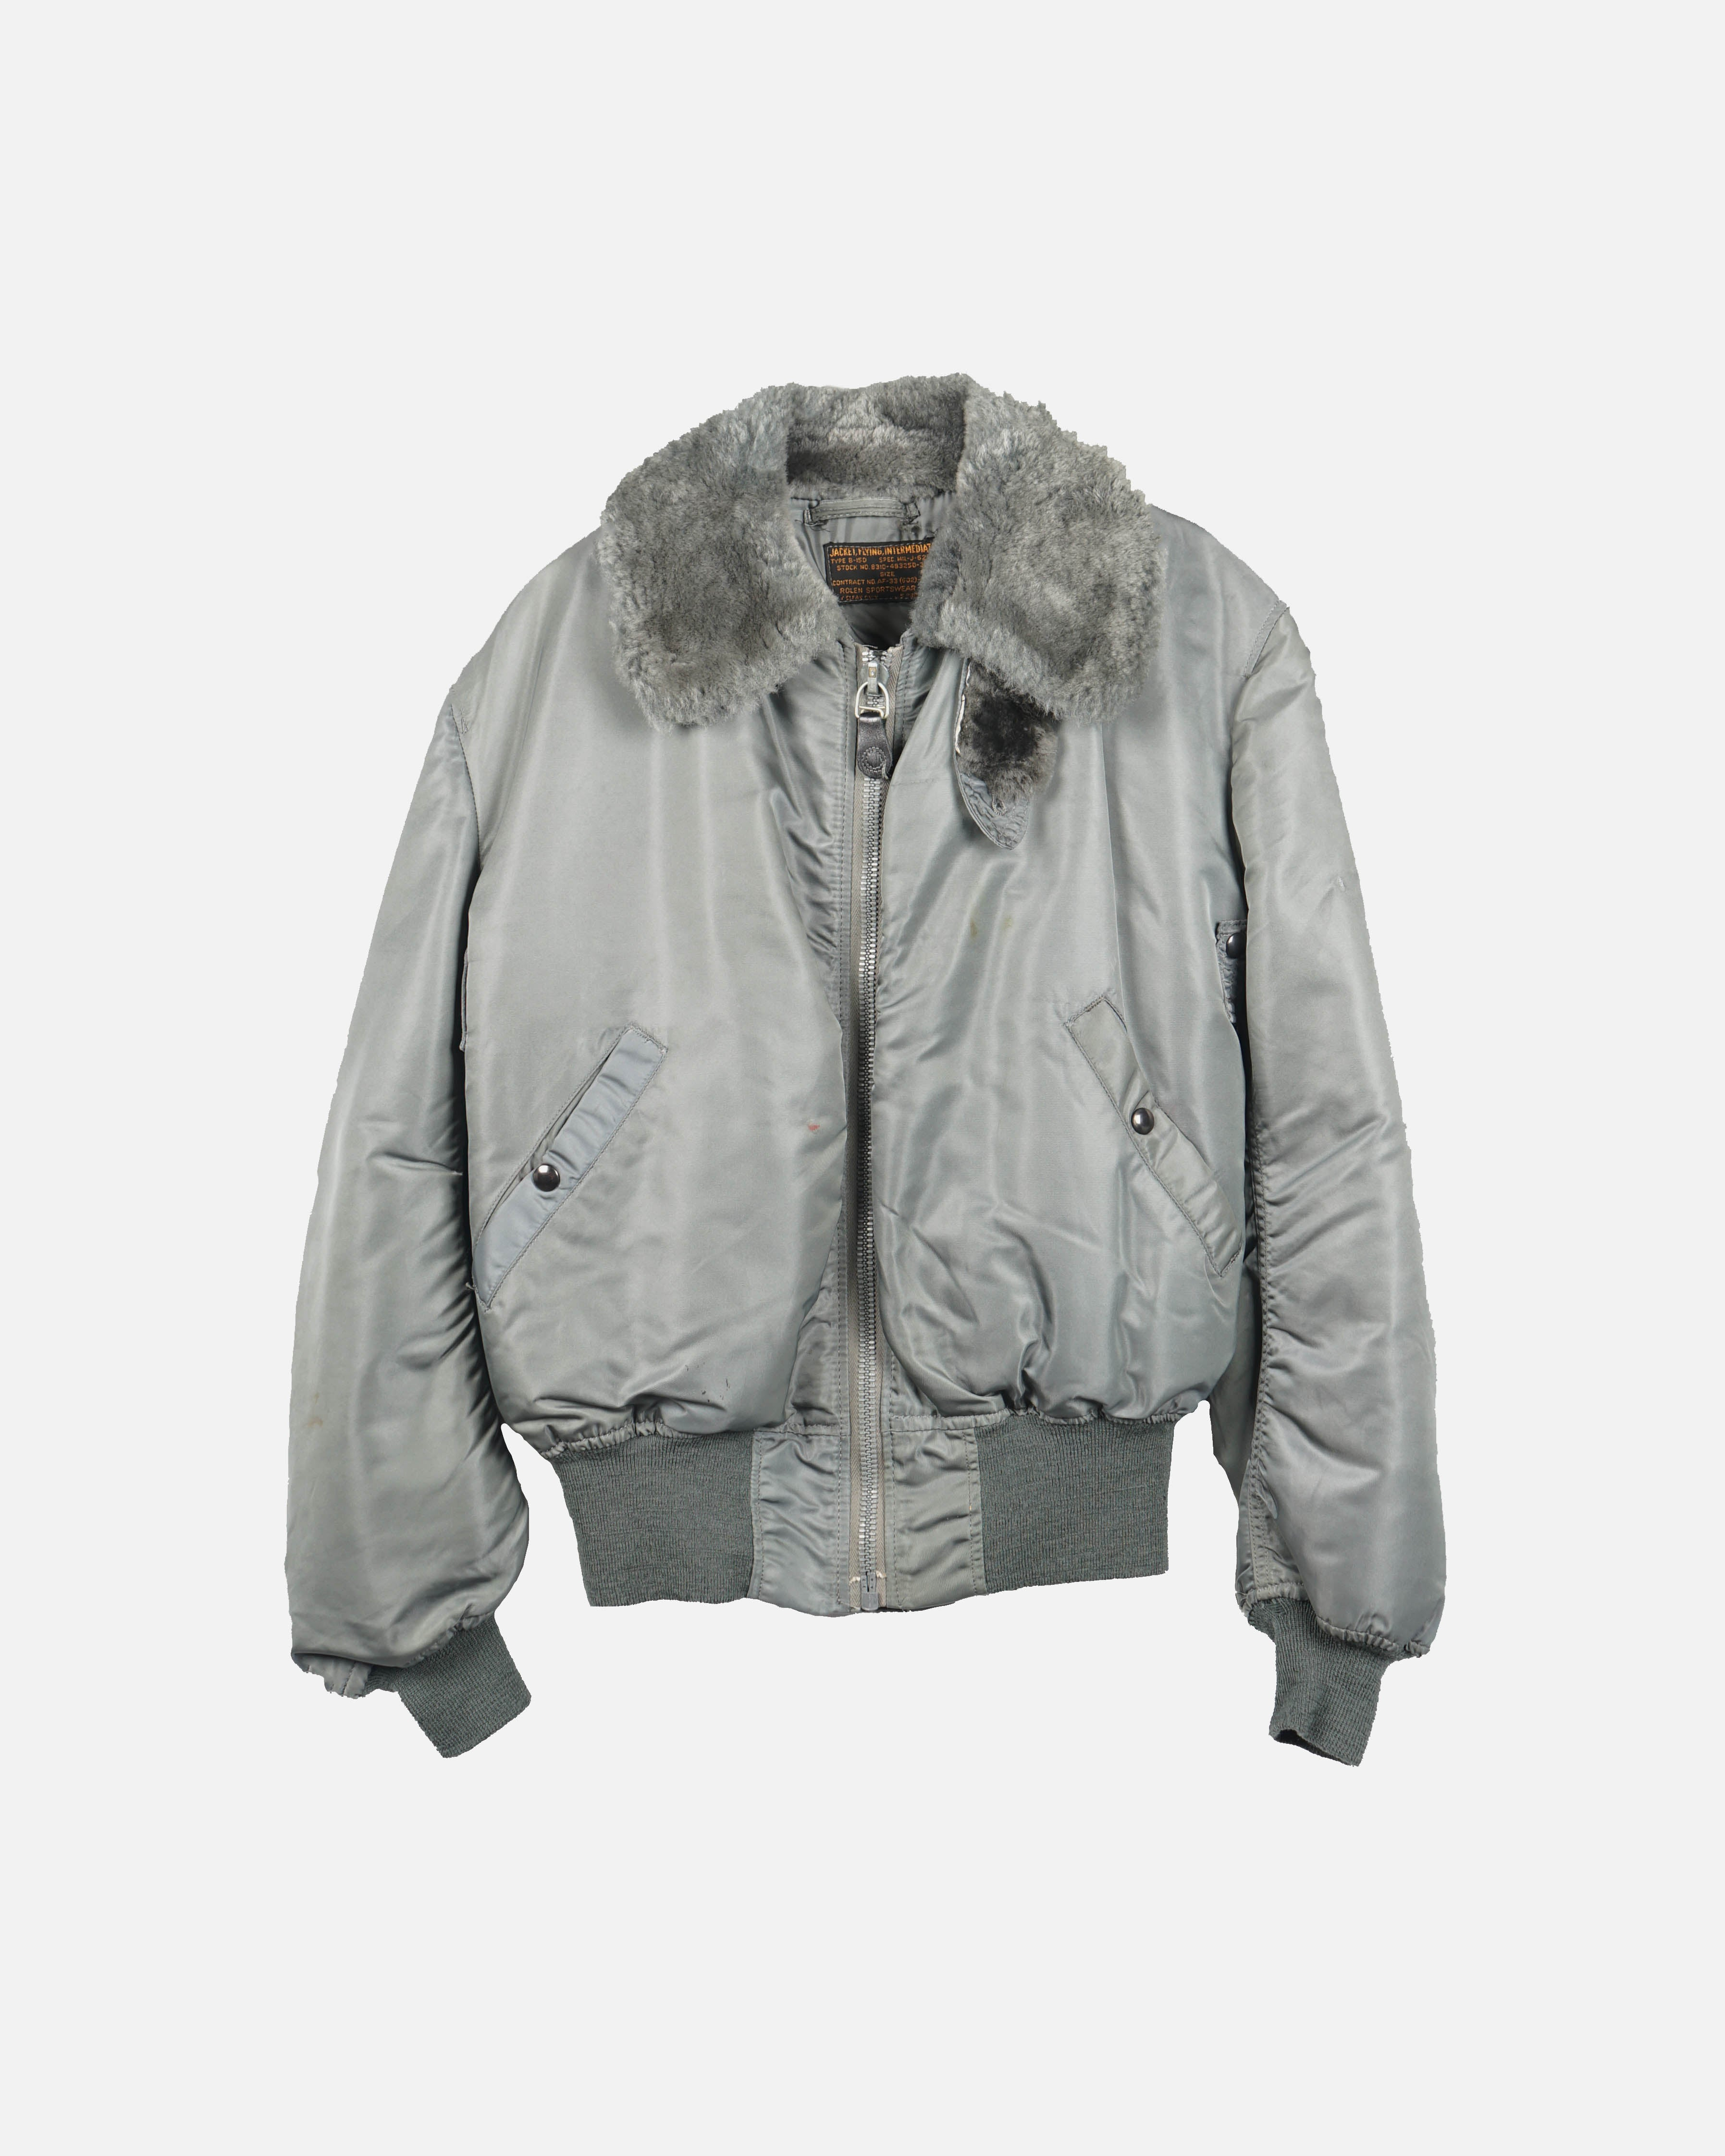 Type B-15D Flight Jacket